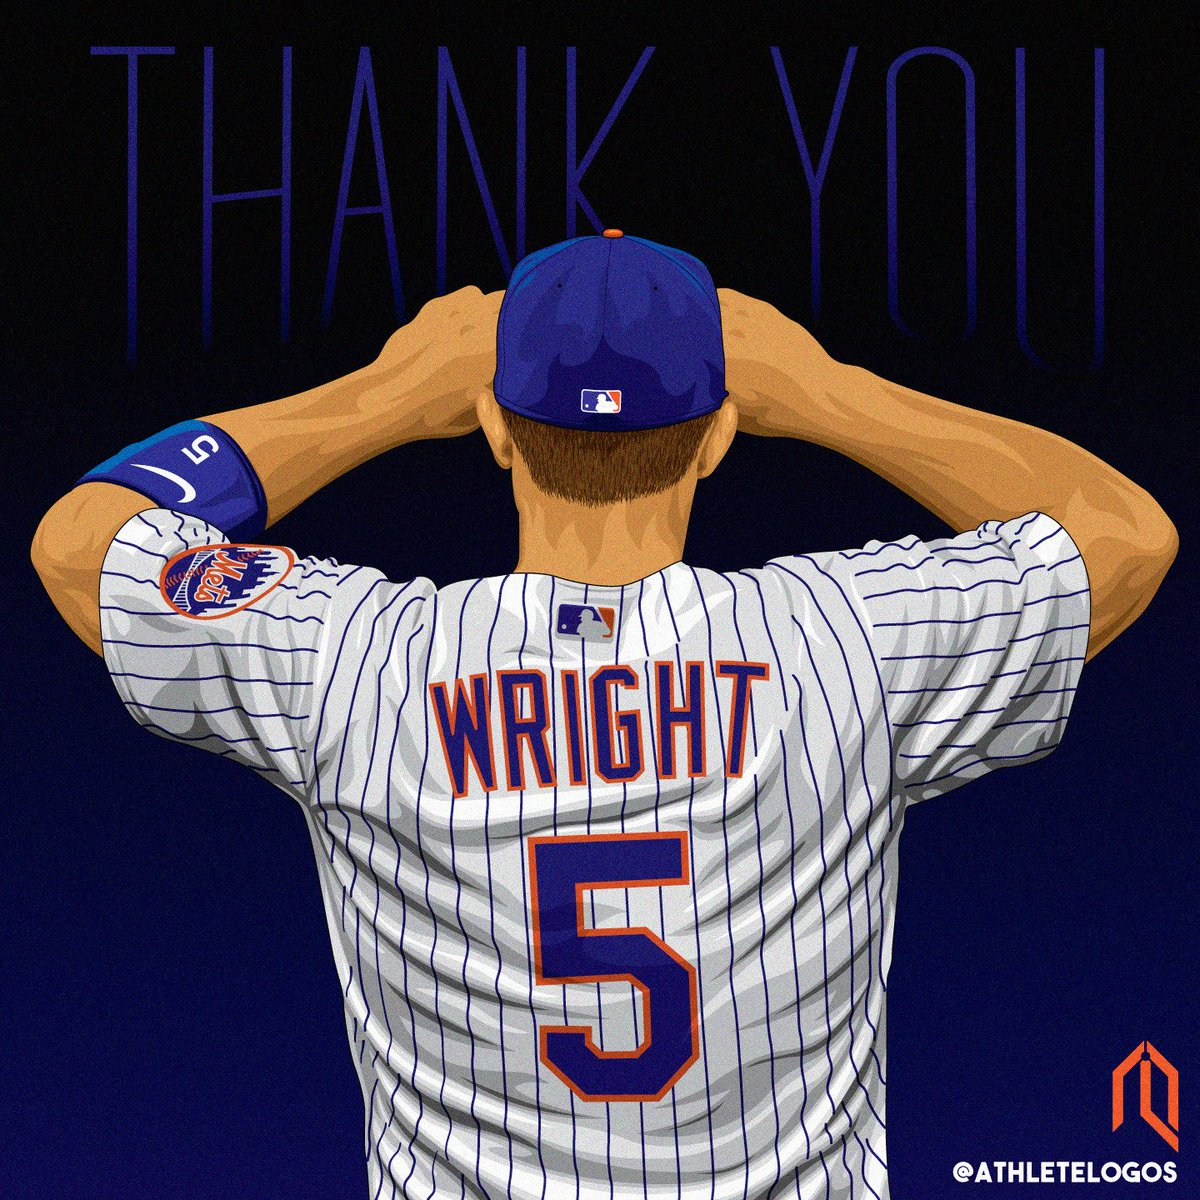 It&#39;s going to be #DavidWright Week here at Athlete Logos. Celebrating the tremendous career the Captain had in Queens. #LGM  @Mets @MLB #Mets #RE5PECT #ThankYouDavid @dylanobrien @spidadmitchell<br>http://pic.twitter.com/kVXeoKwRVw